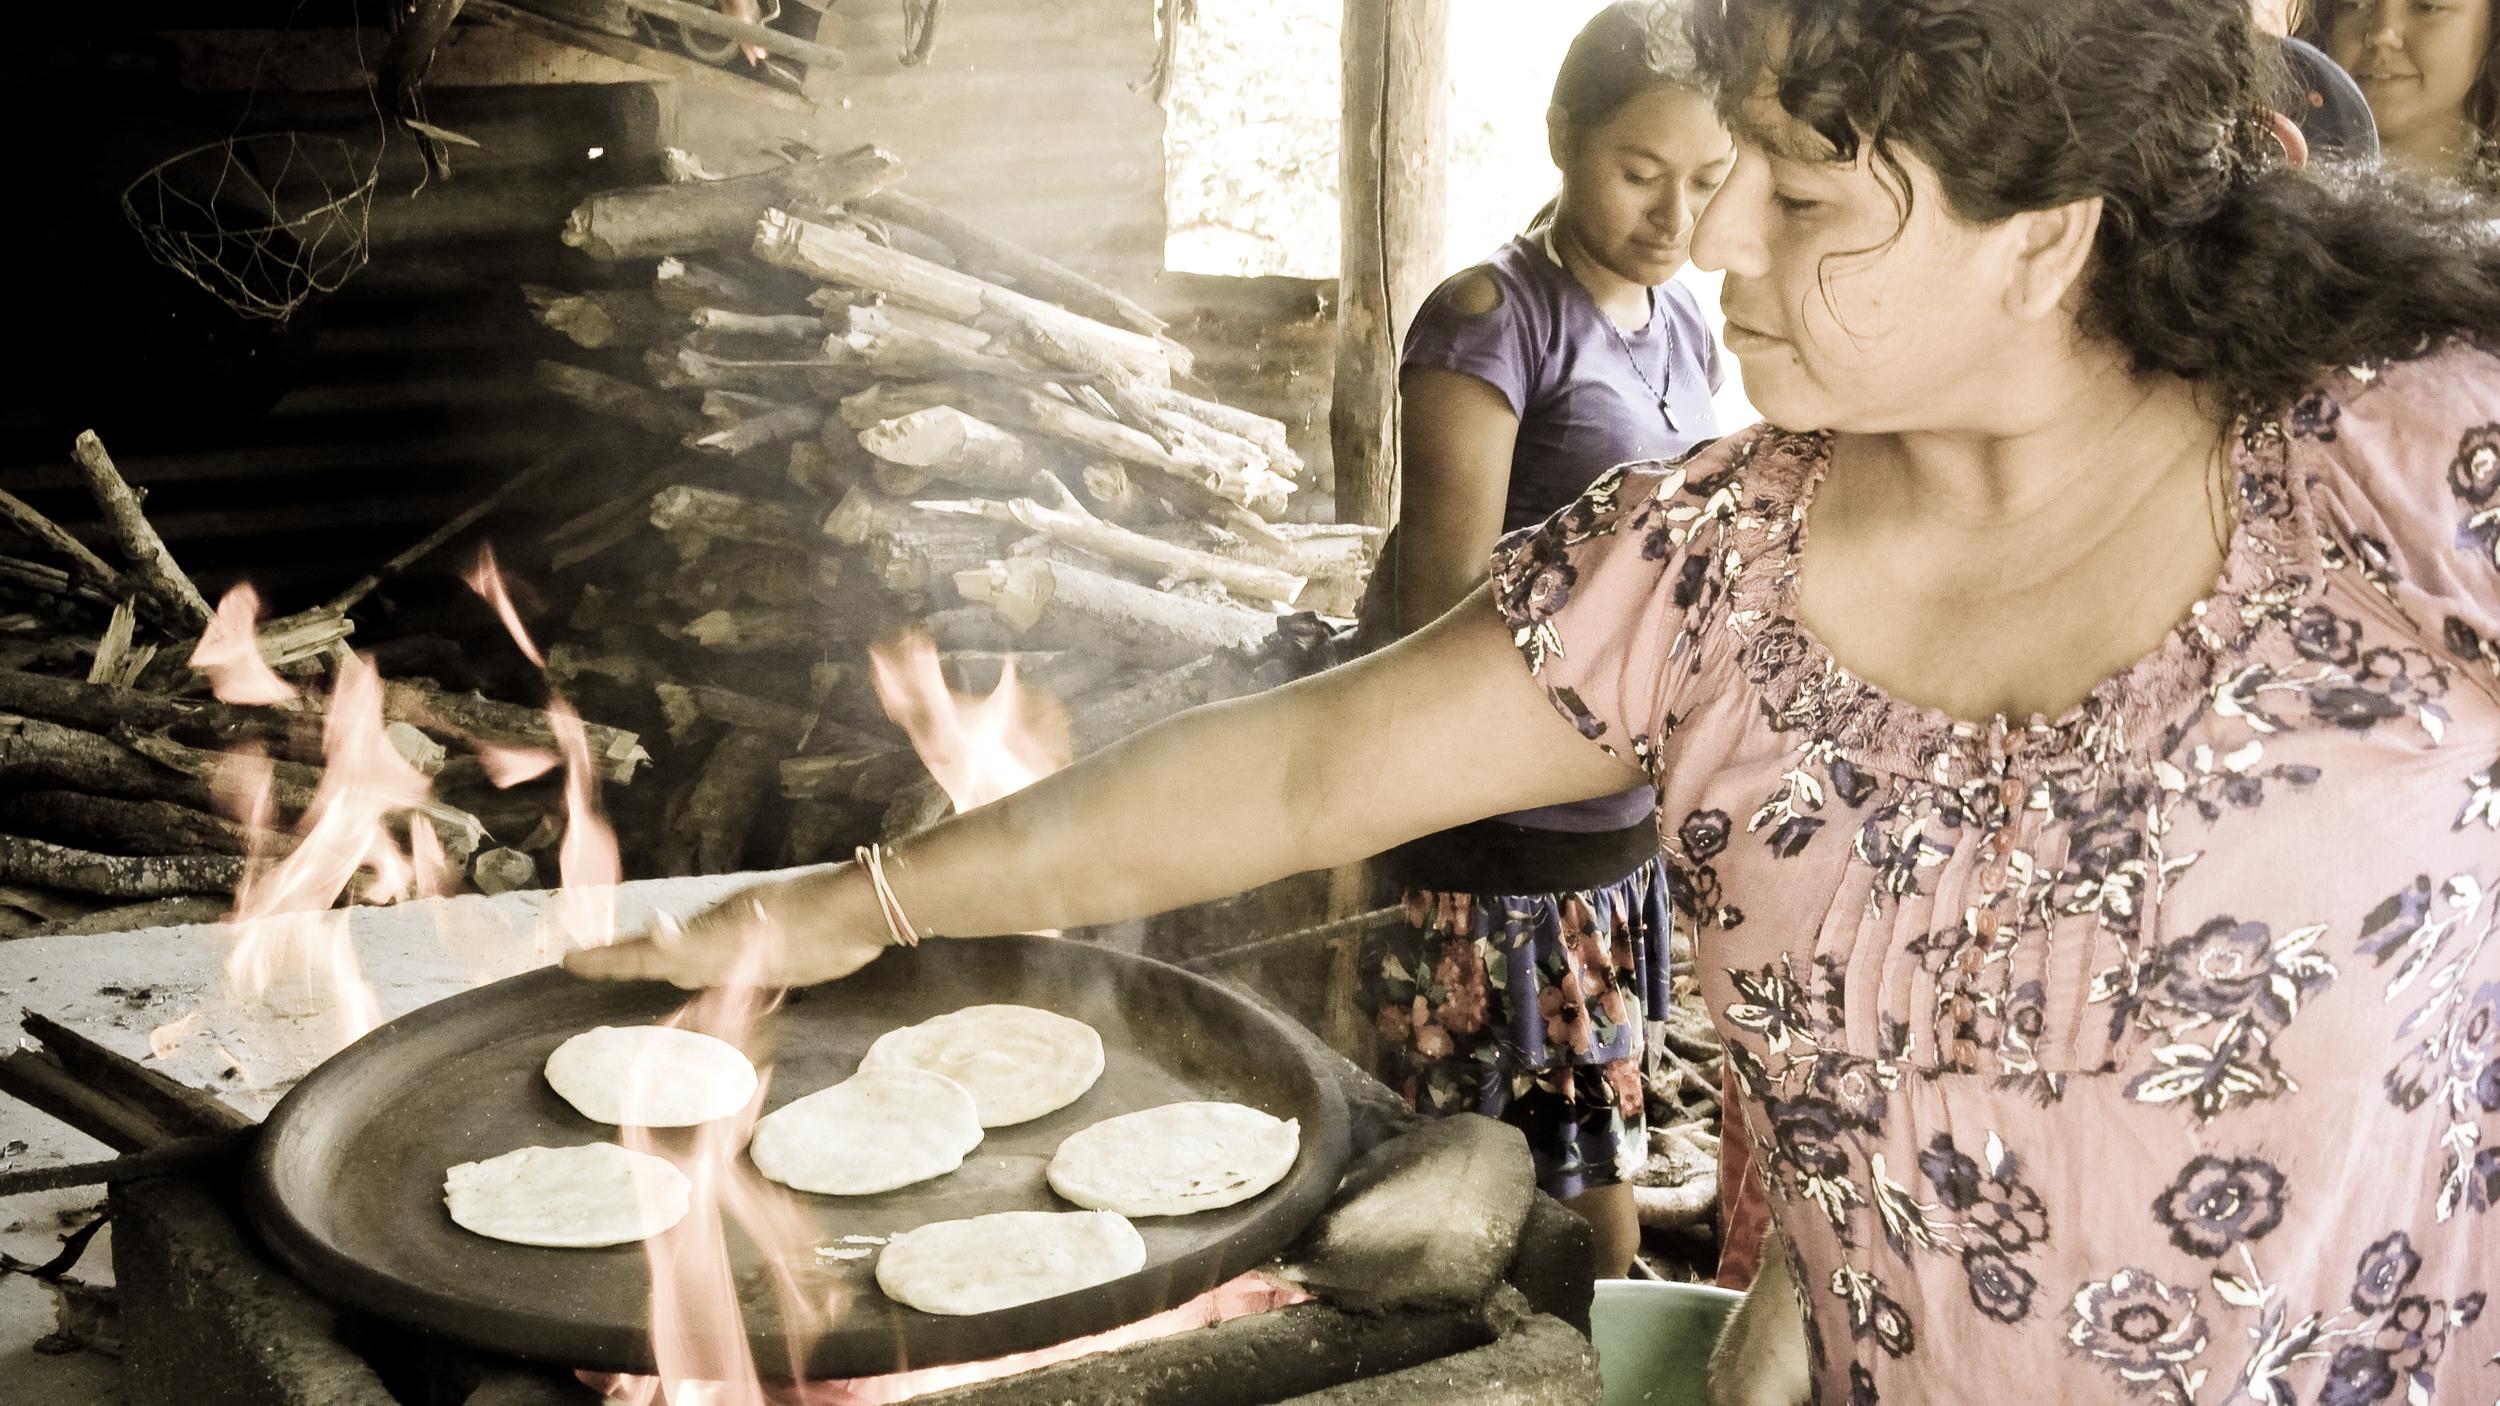 Cooking with open fires is common in El Salvador. This method requires a lot of wood, which is a resource that is physically demanding to gather.